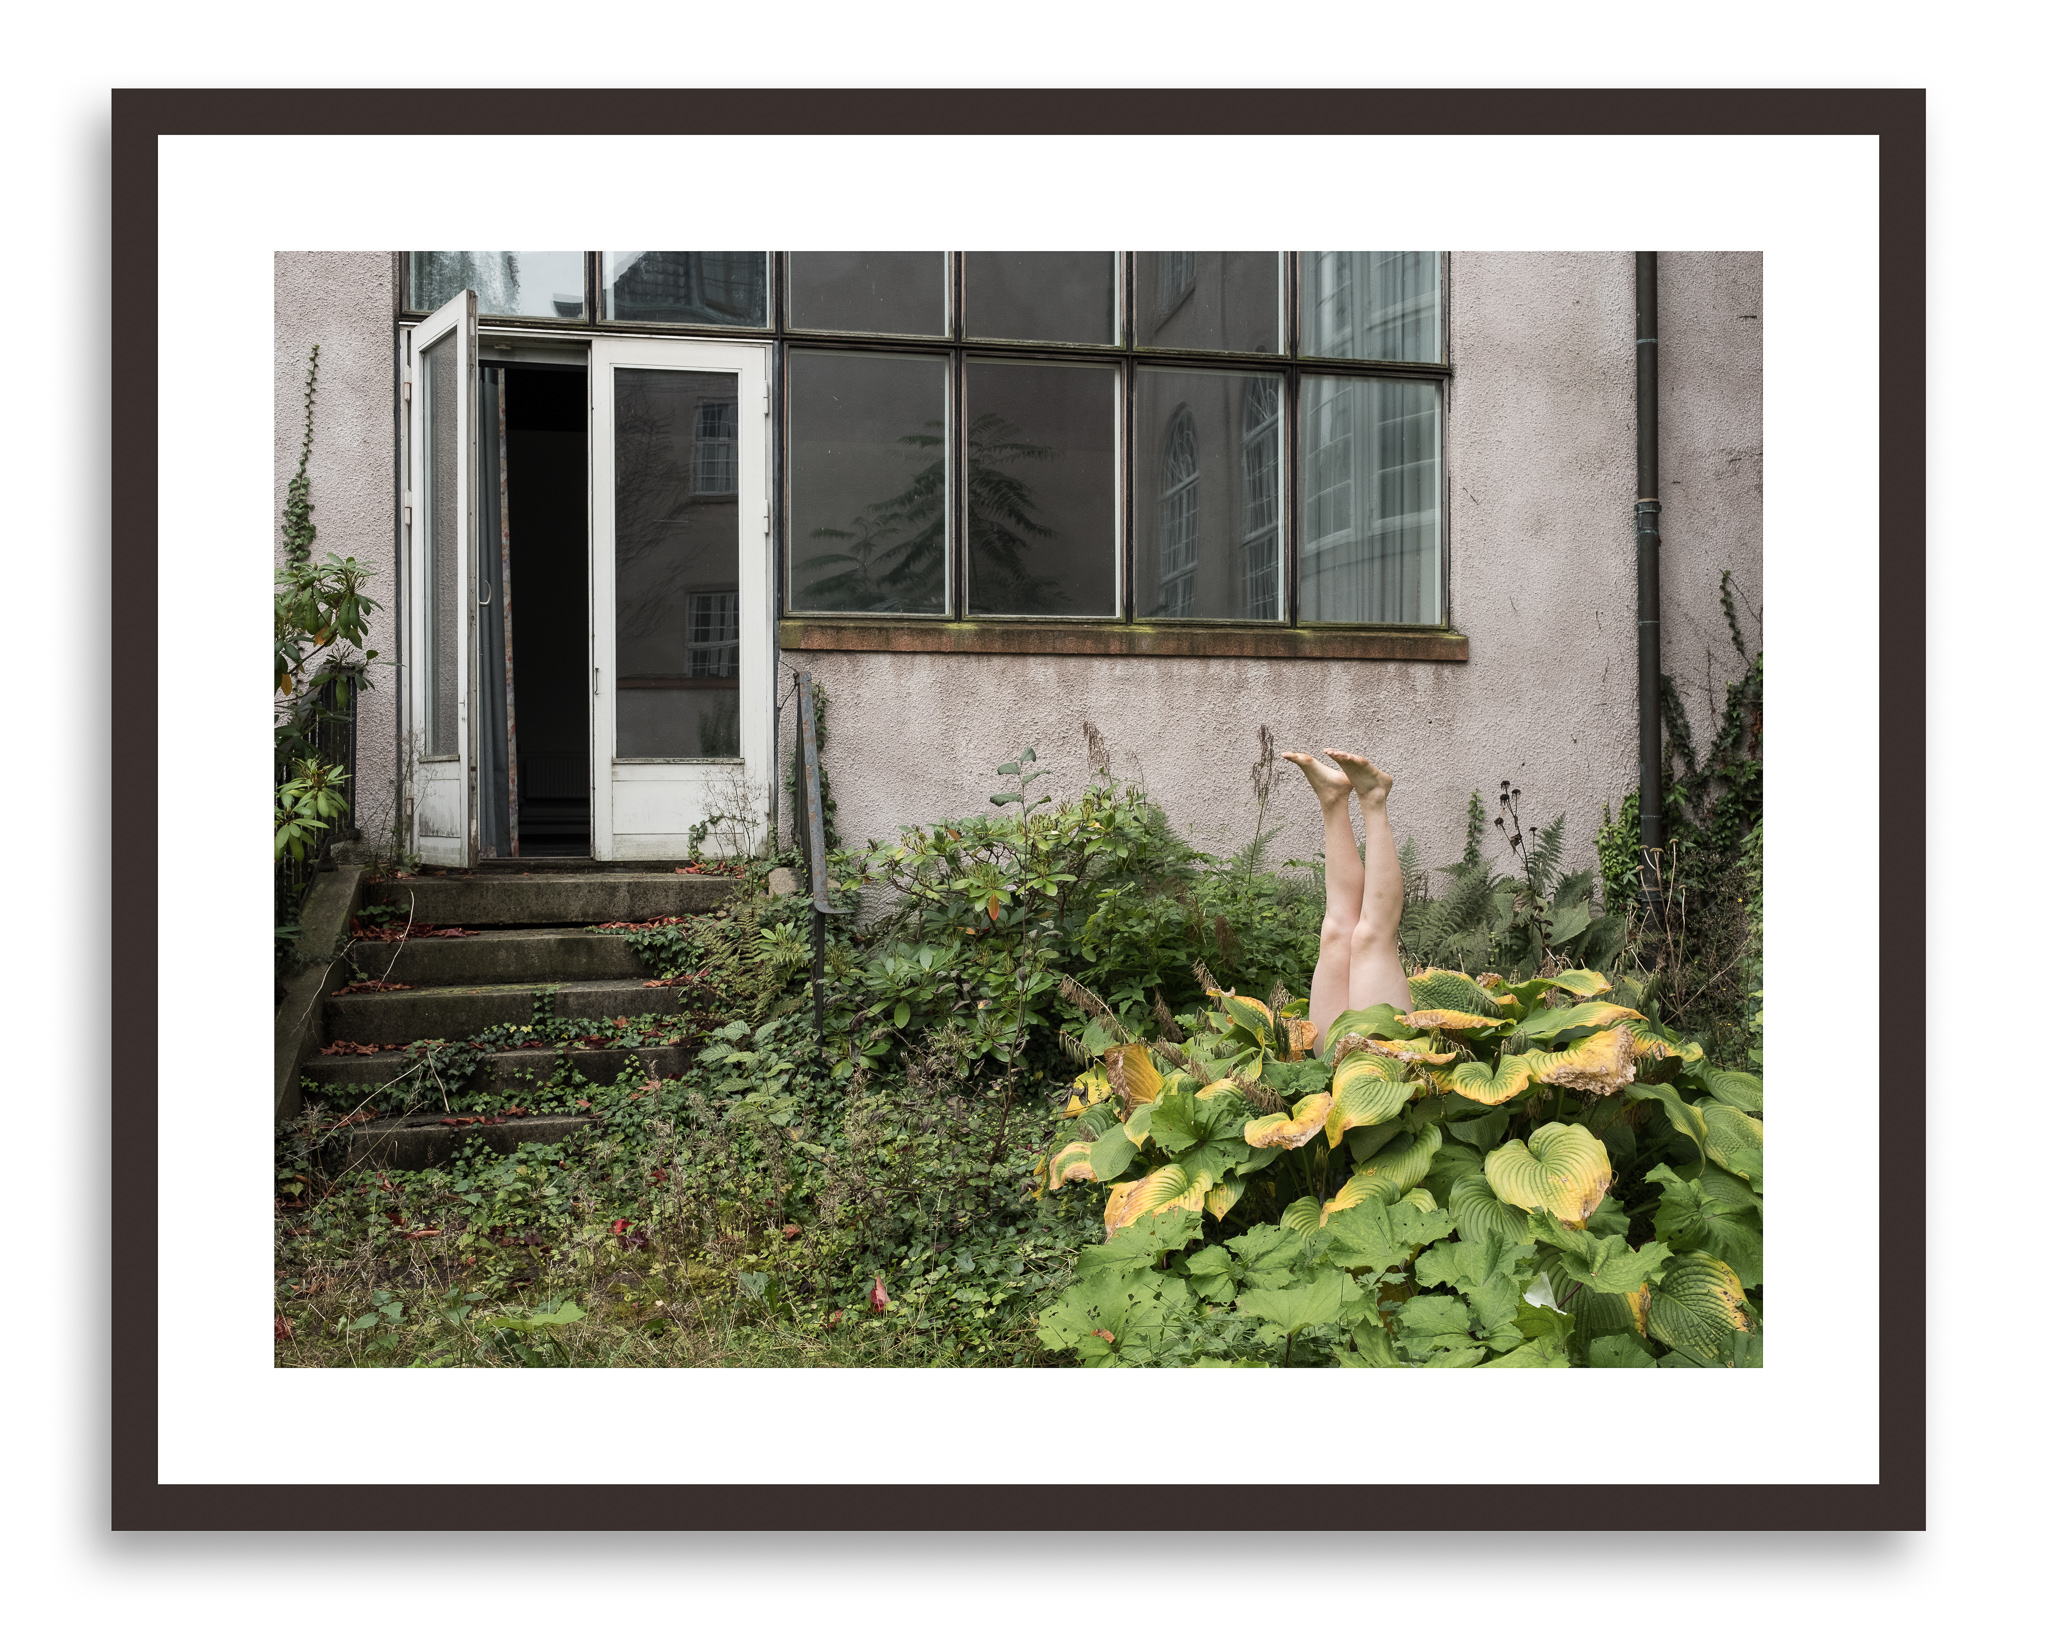 Big Sleep No. 2 62 x 74 cm   Selected by the    Copenhagen Photo Festival 2019    as part of The Censored Exhibition    Available To View 9800 Sek (Framed)